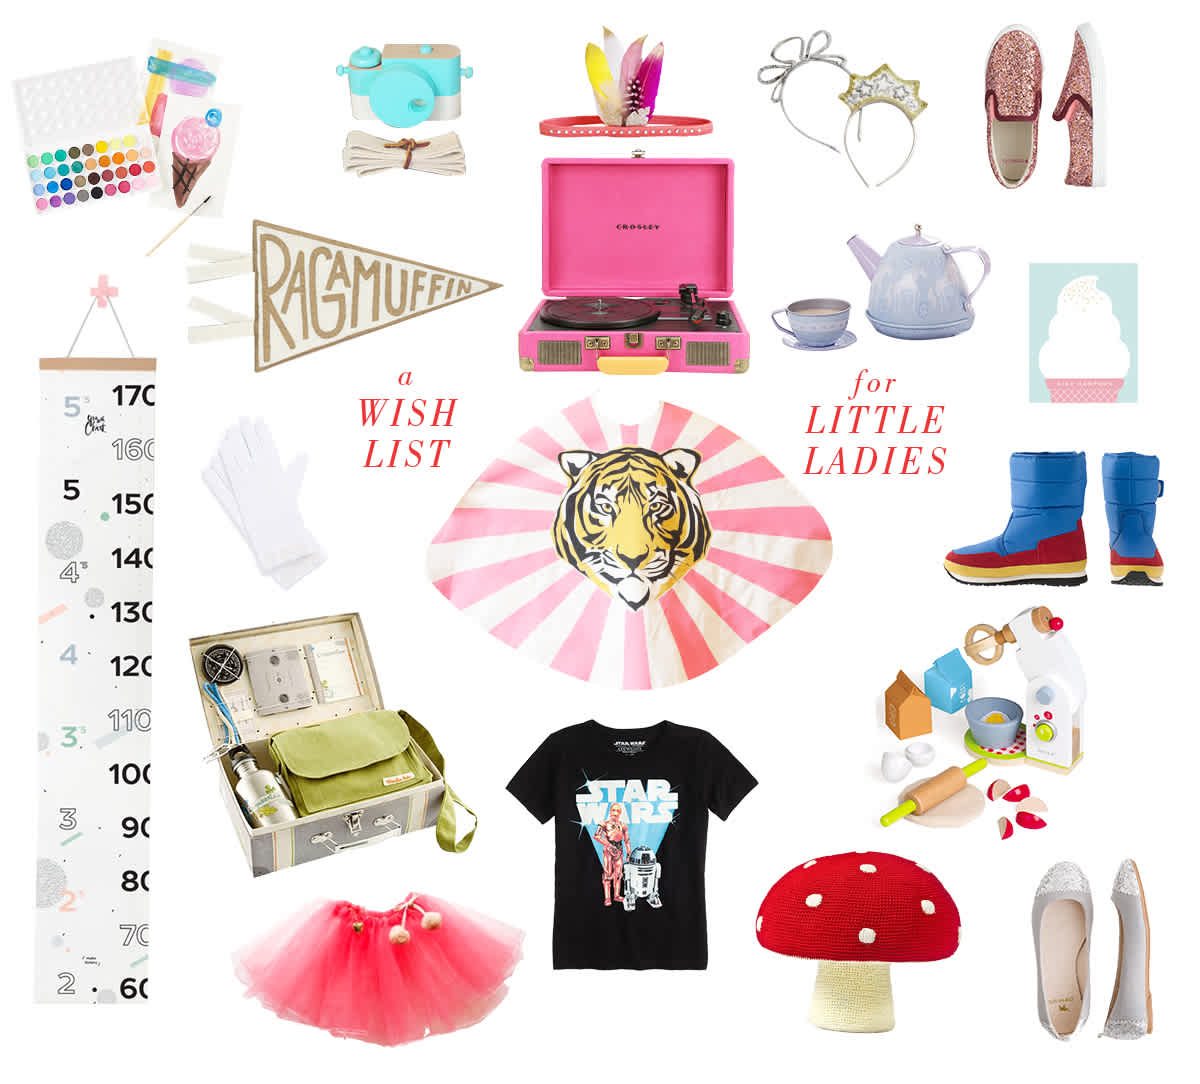 A Wish List For Little Ladies - Lay Baby Lay